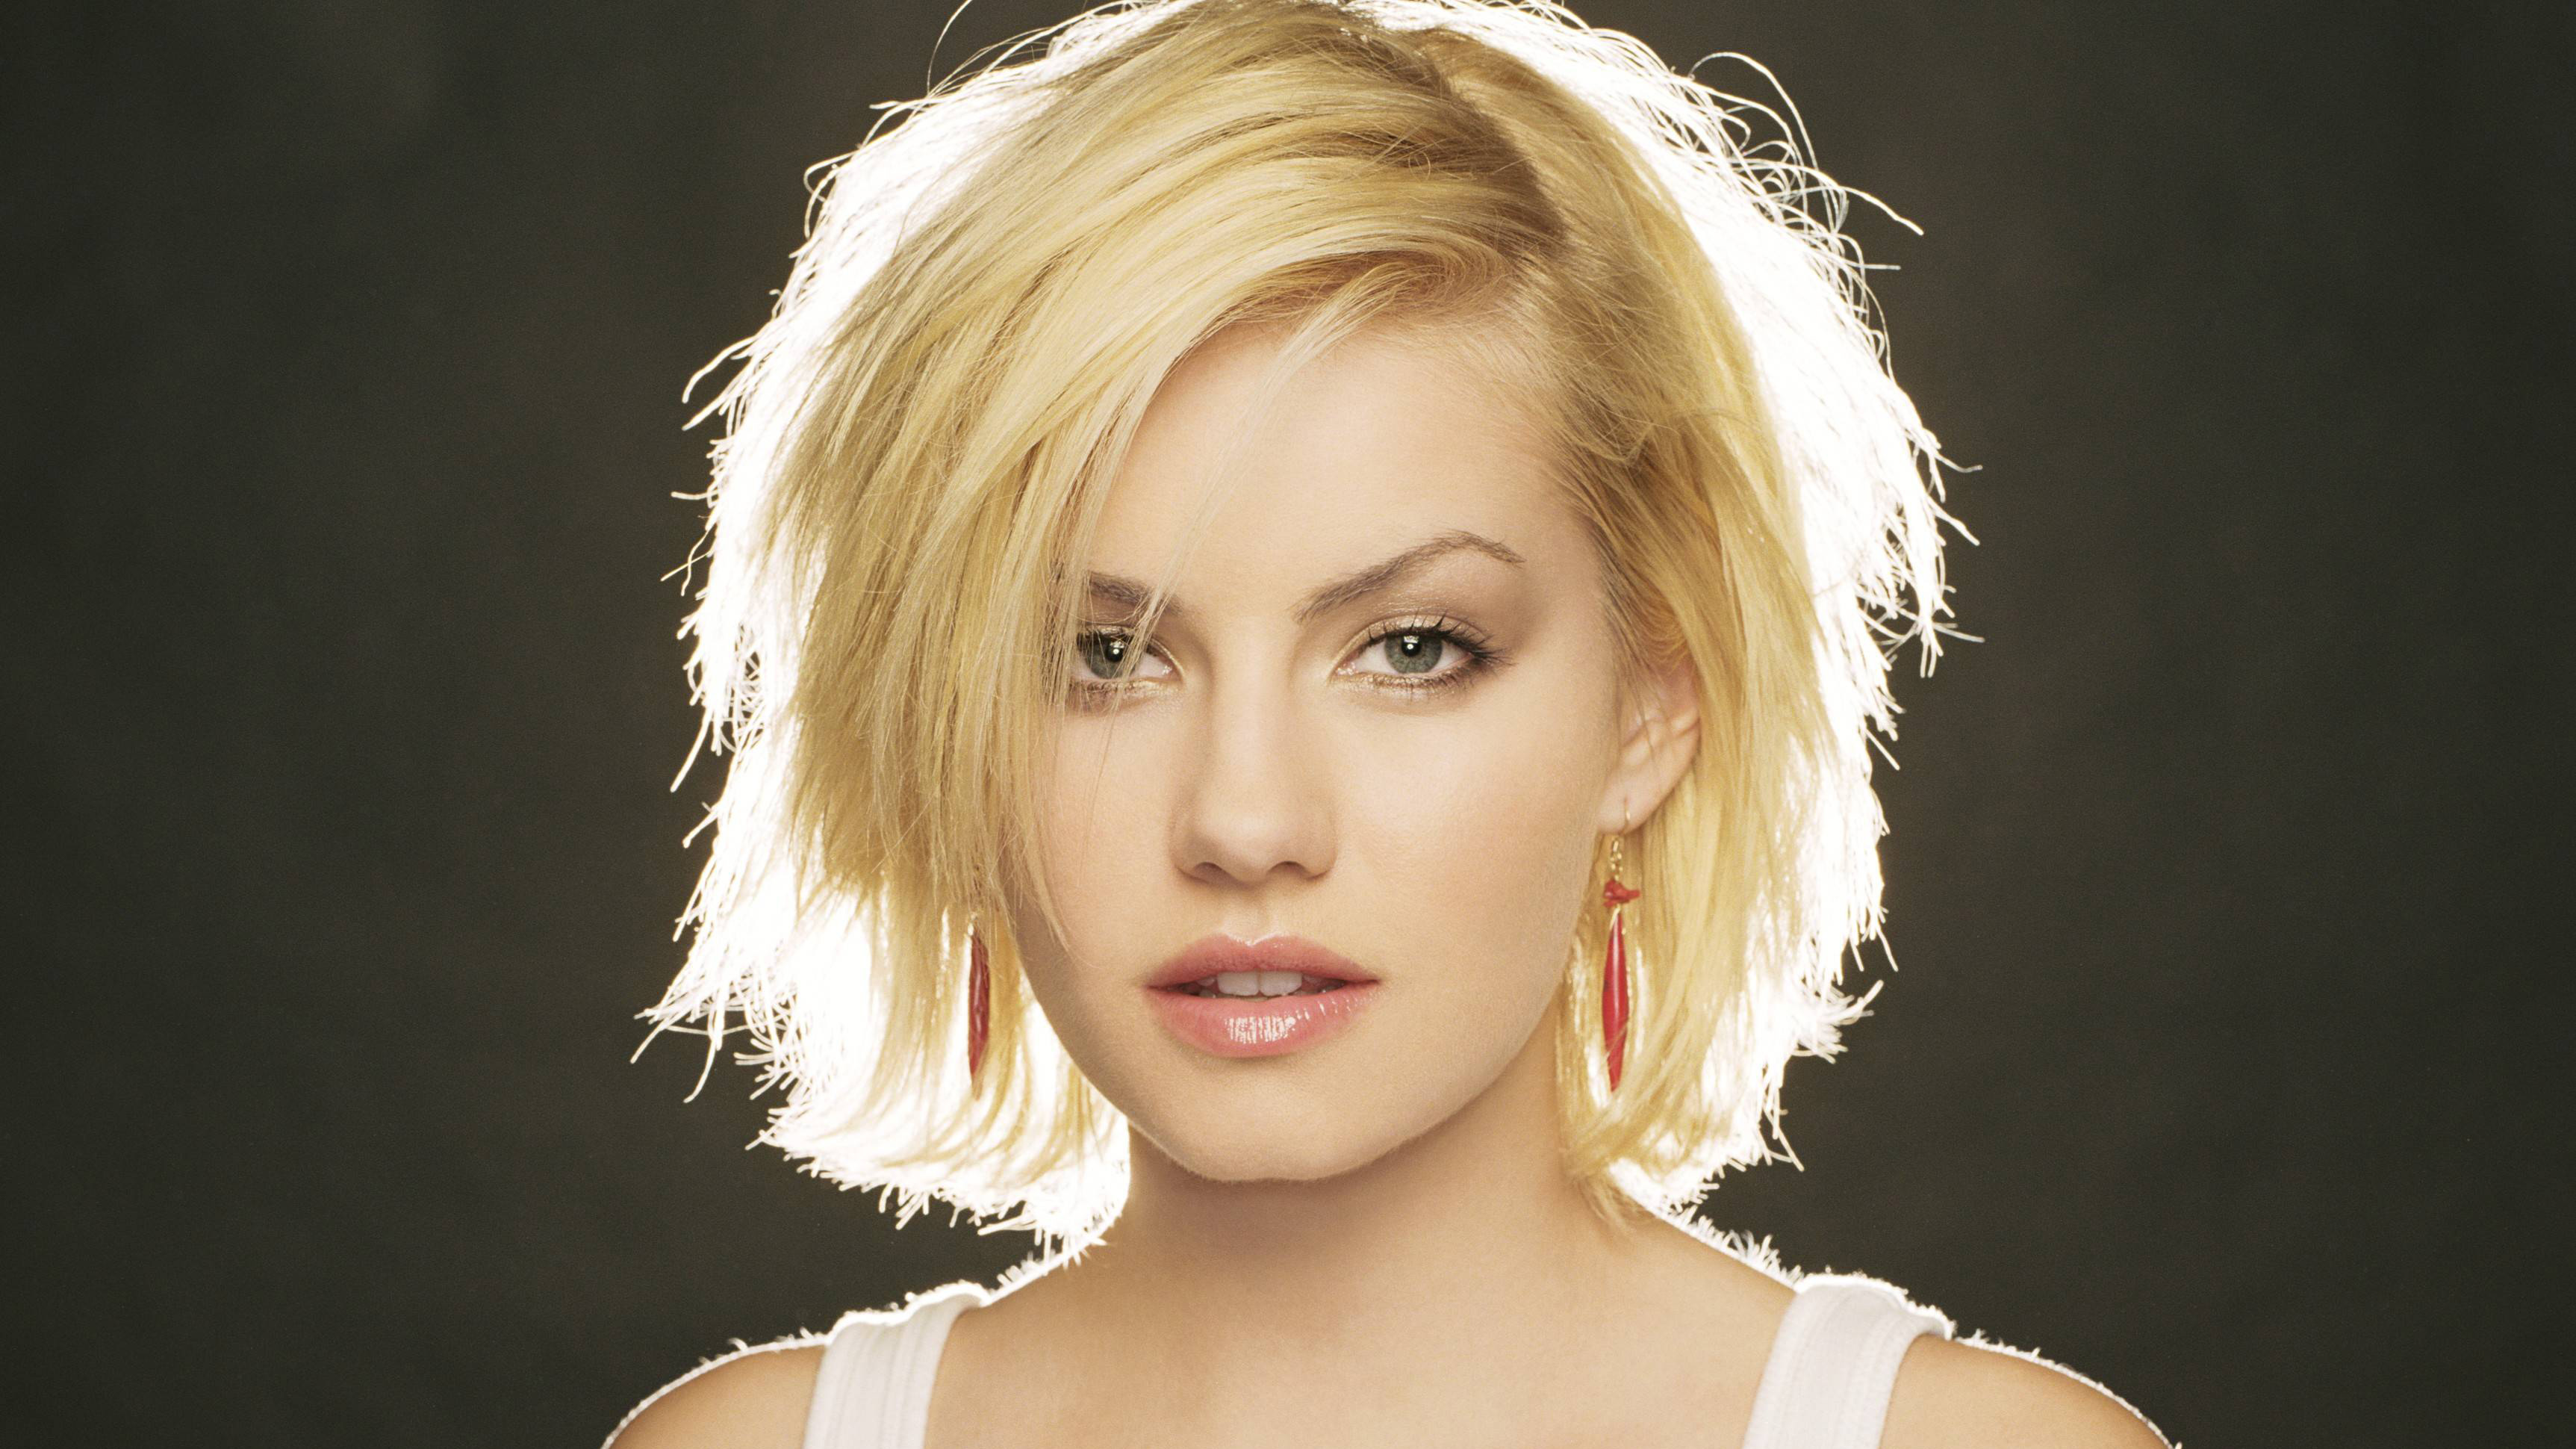 Elisha Cuthbert Hd Wallpapers: Elisha Cuthbert 4k, HD Celebrities, 4k Wallpapers, Images